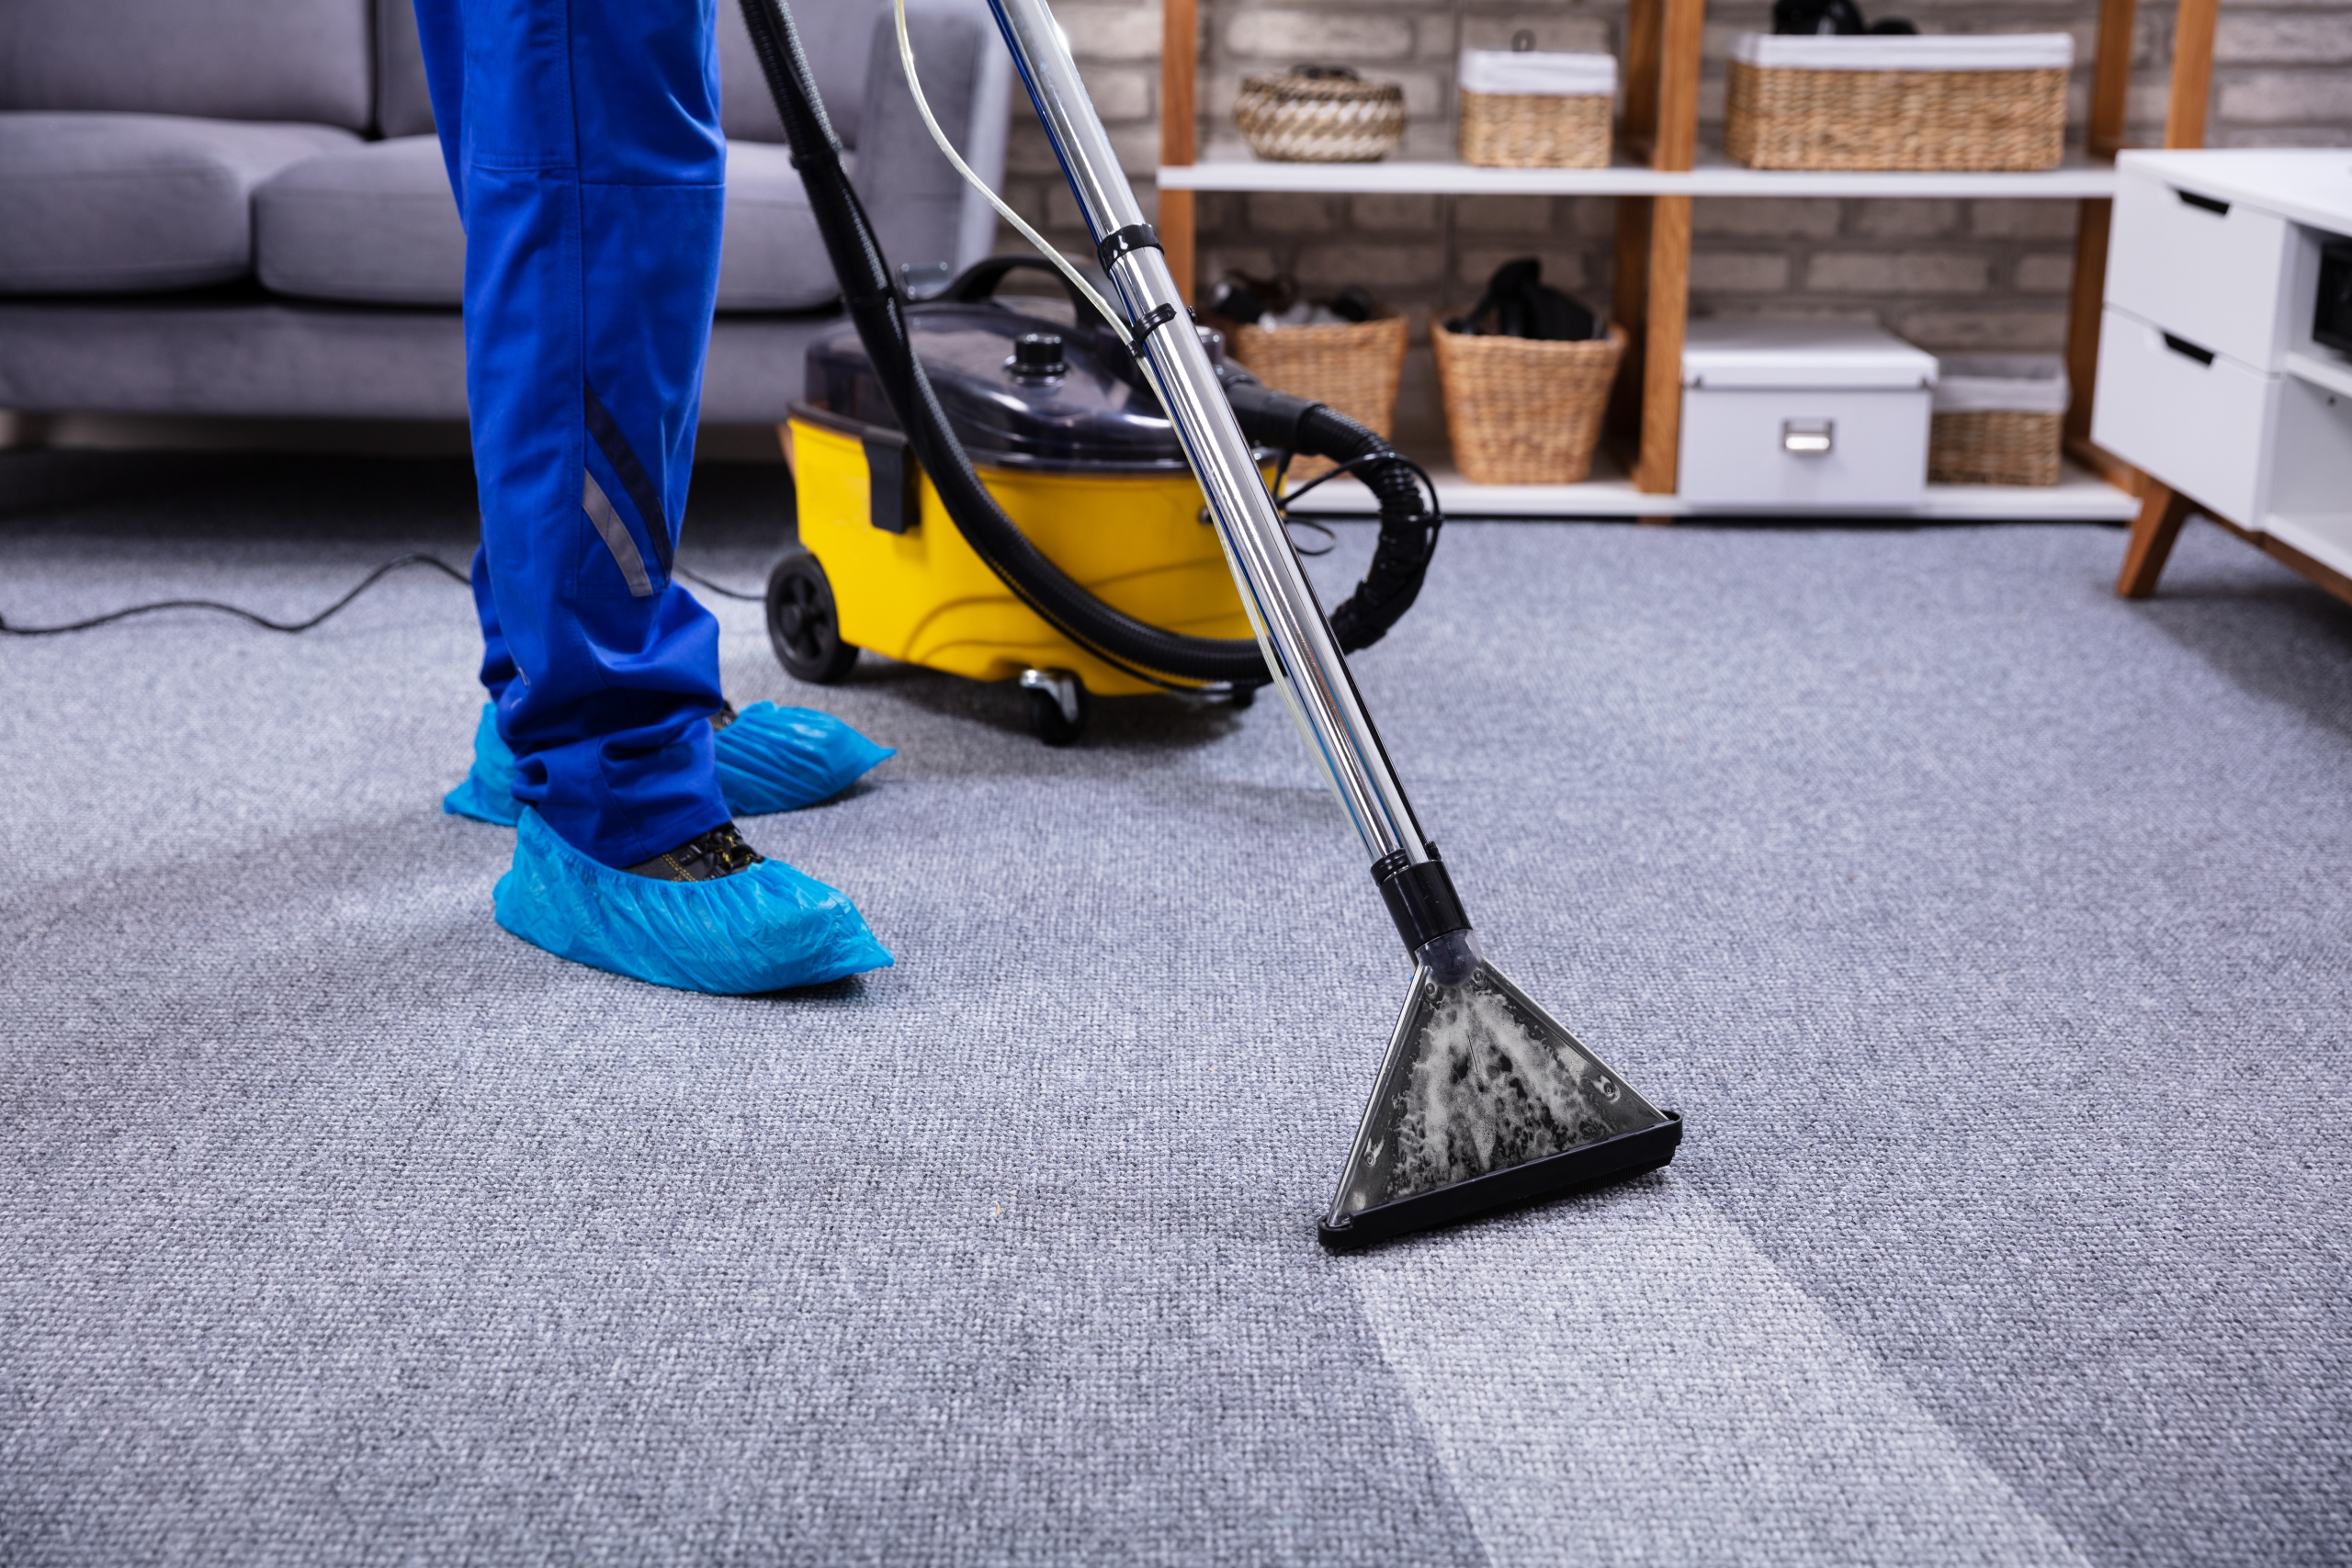 office-cleaning-services-chicago-commercial-cleaning-services-chicago